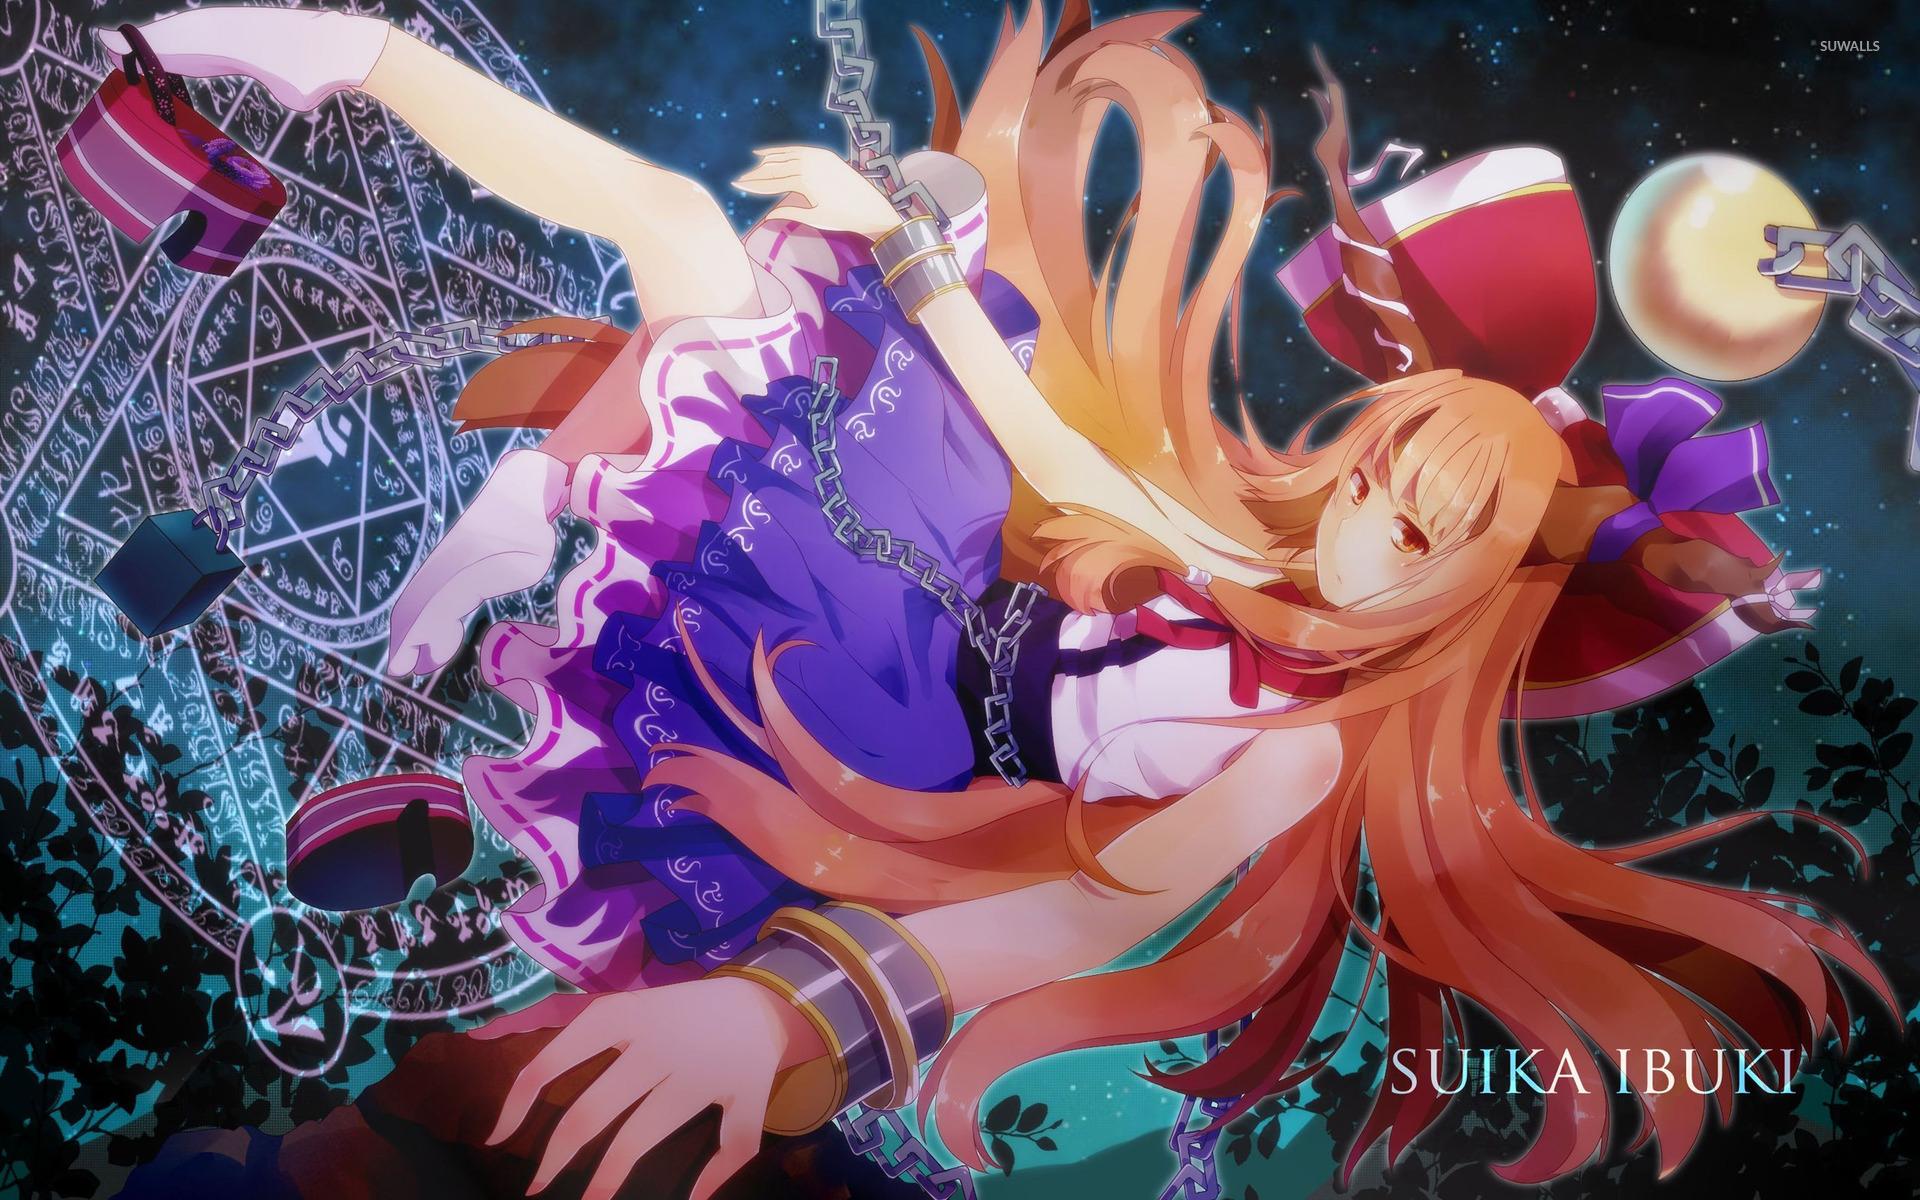 Kitsune Anime Girl Wallpaper Suika Ibuki Touhou Project 2 Wallpaper Anime